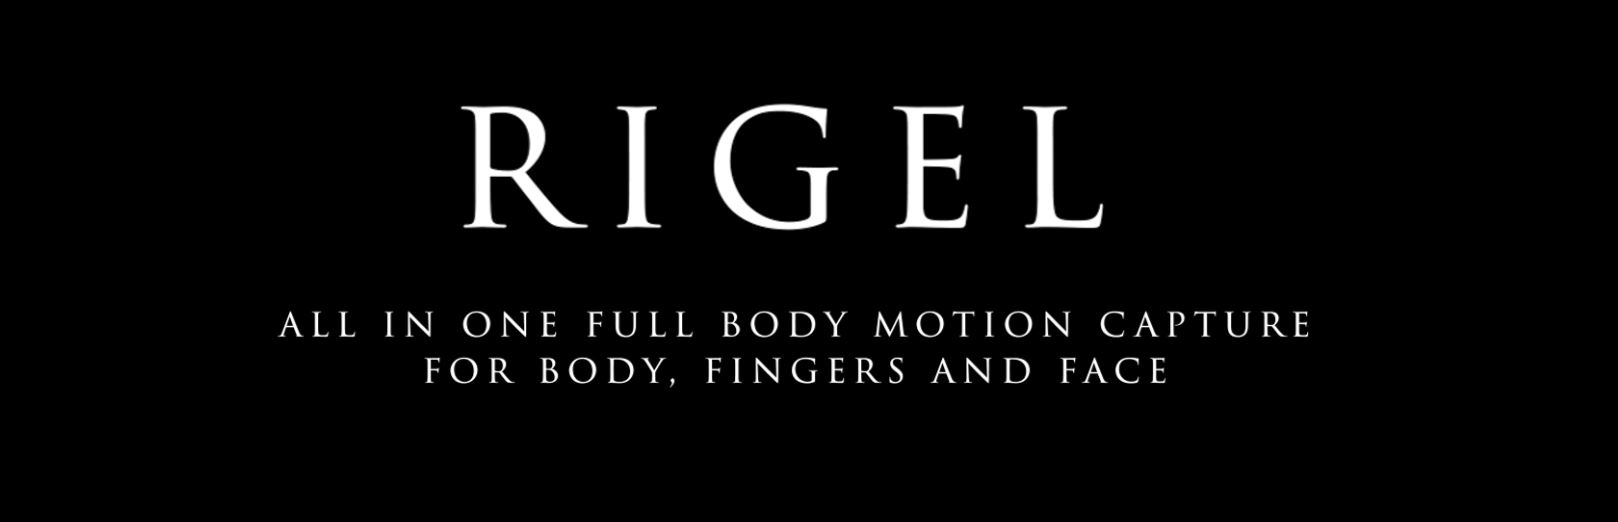 Rigel - All in One Full Body Motion Capture for Body, Fingers and Face - Demo Available